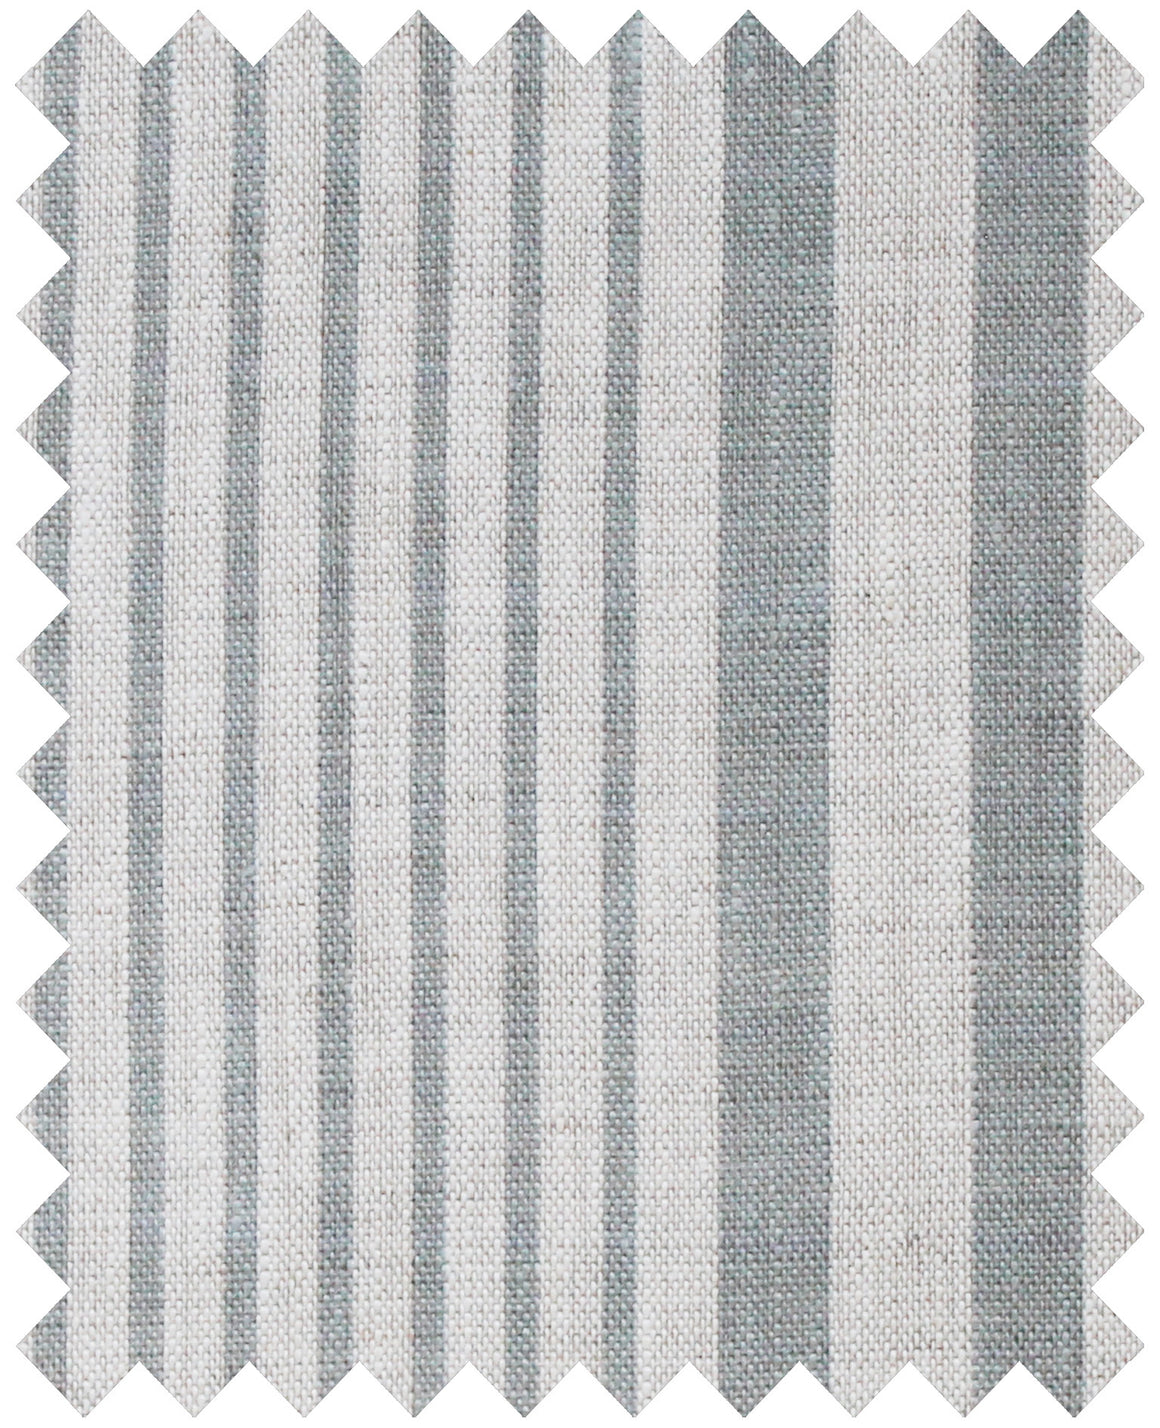 Stanley Stripe Manoir Grey - Natural Linen Swatch